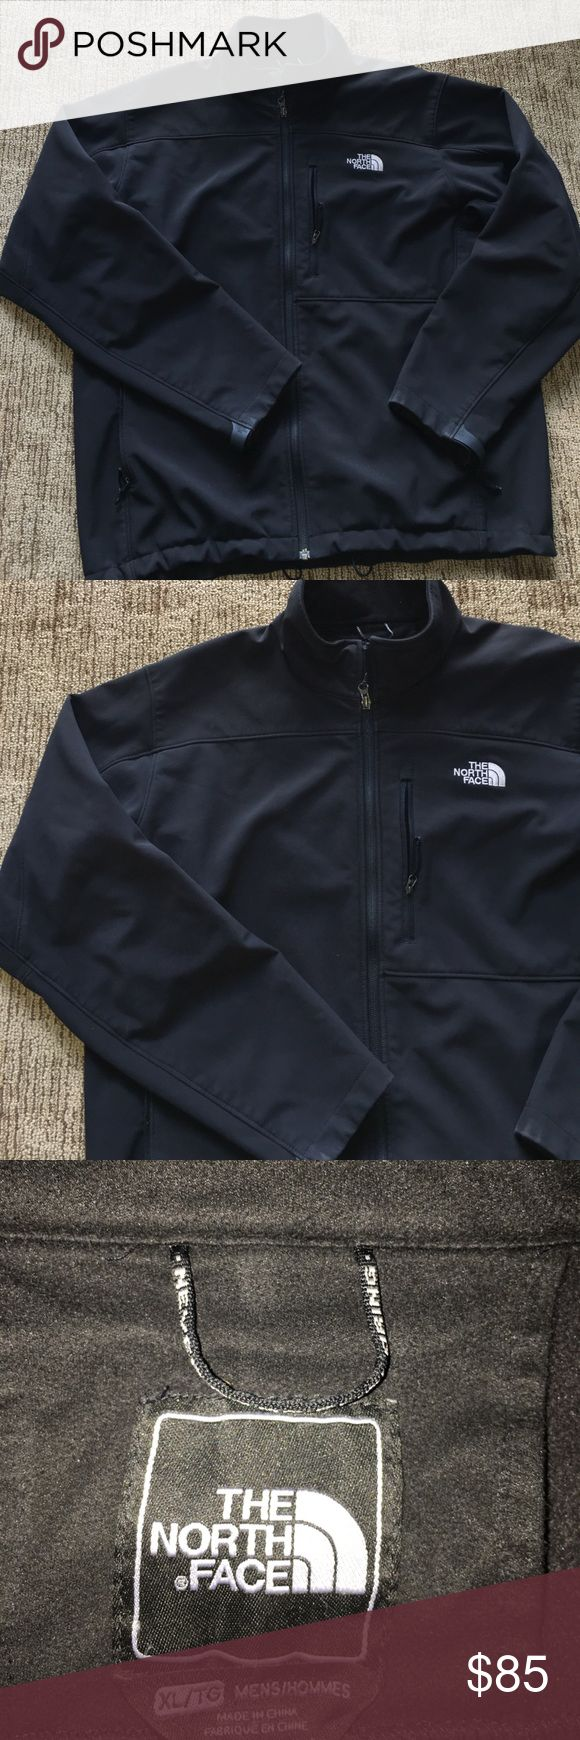 North face men's jacket Wore once North Face Jackets & Coats